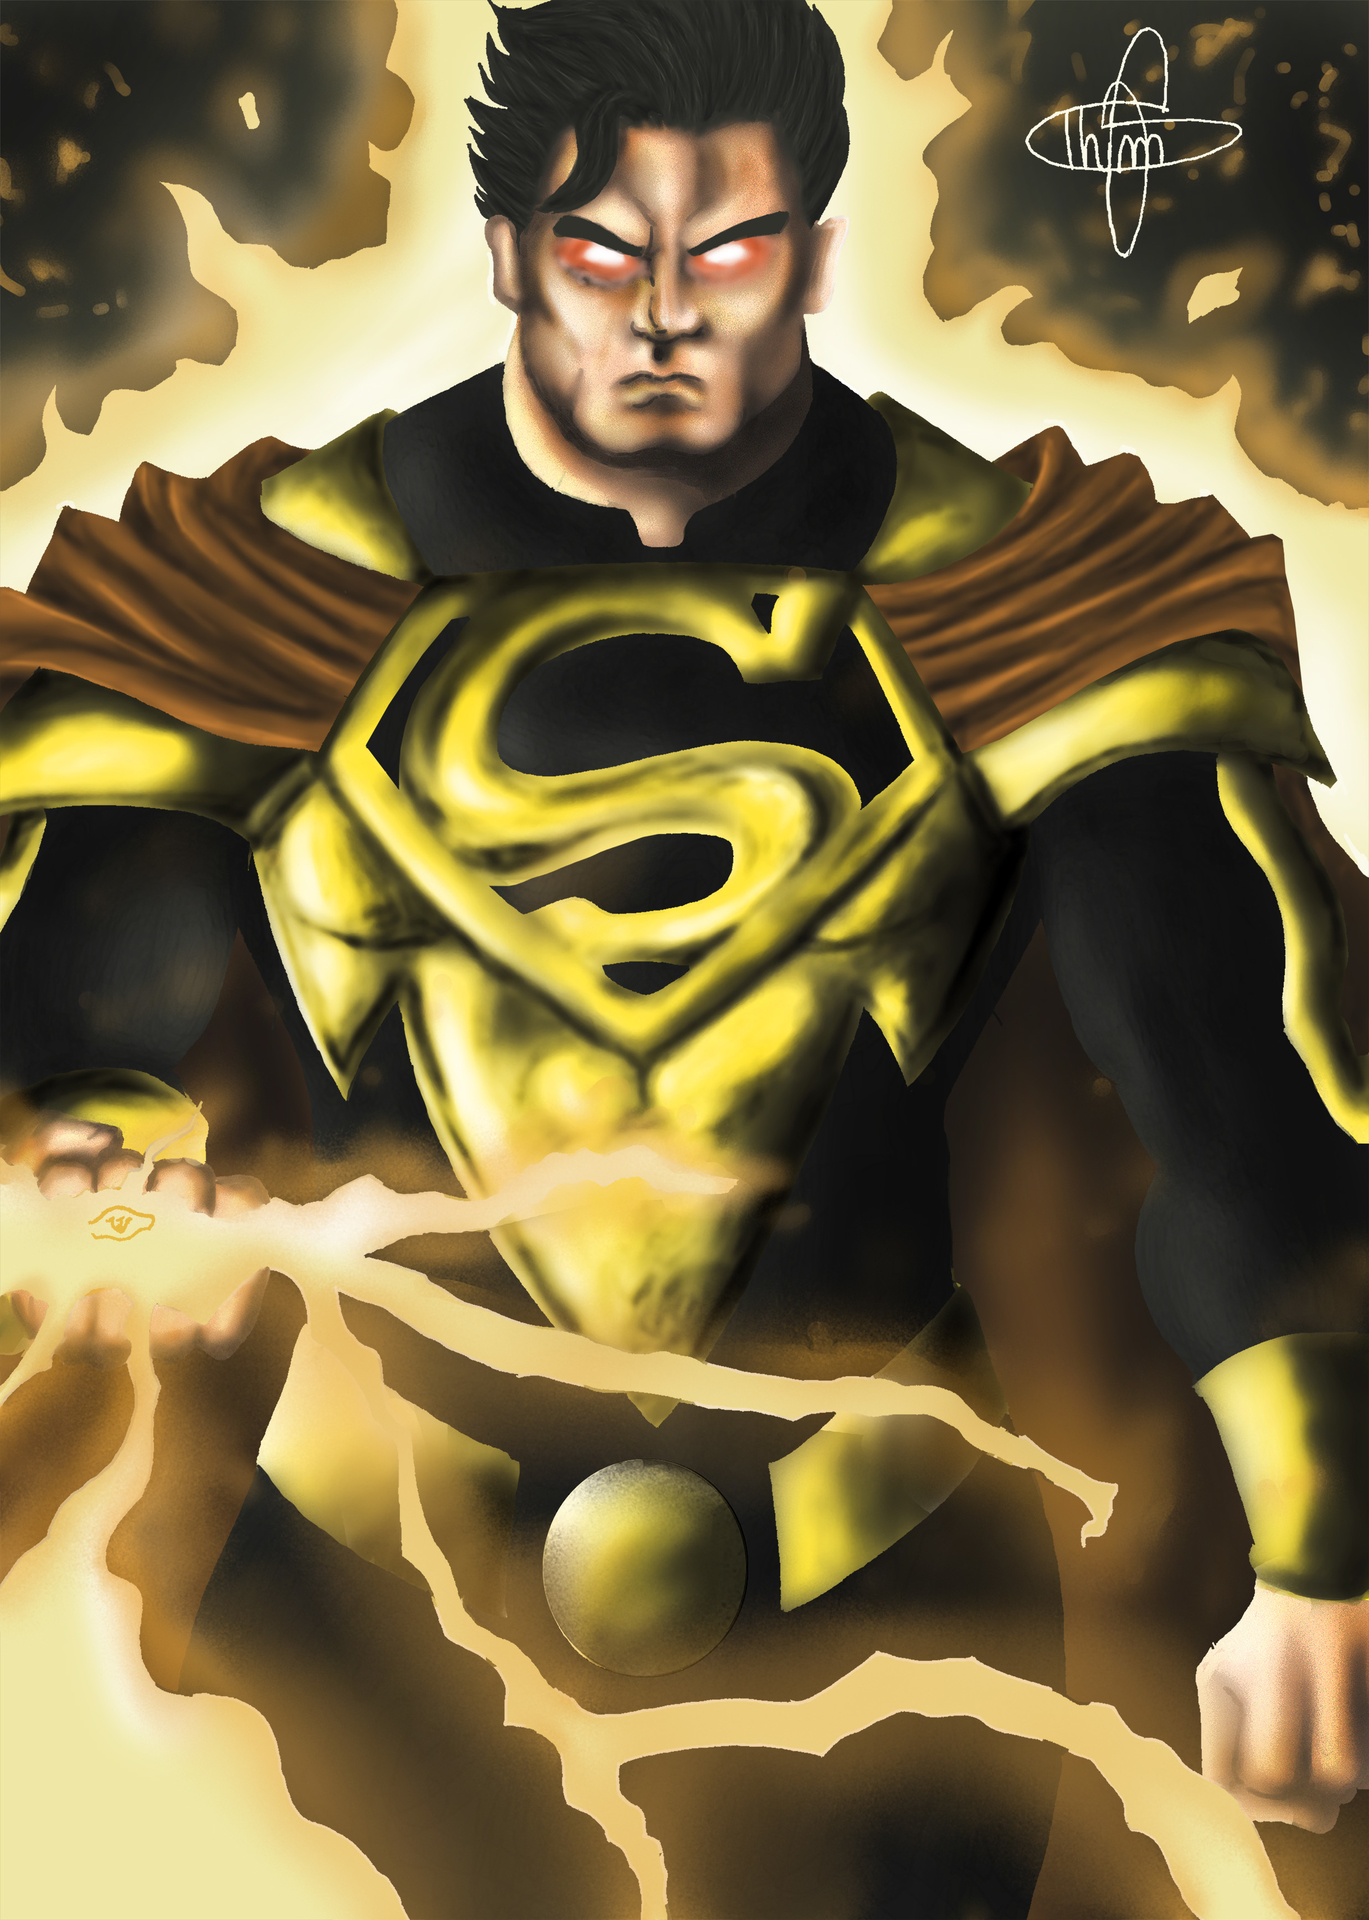 superman yellow lanter par ThimMyDraw